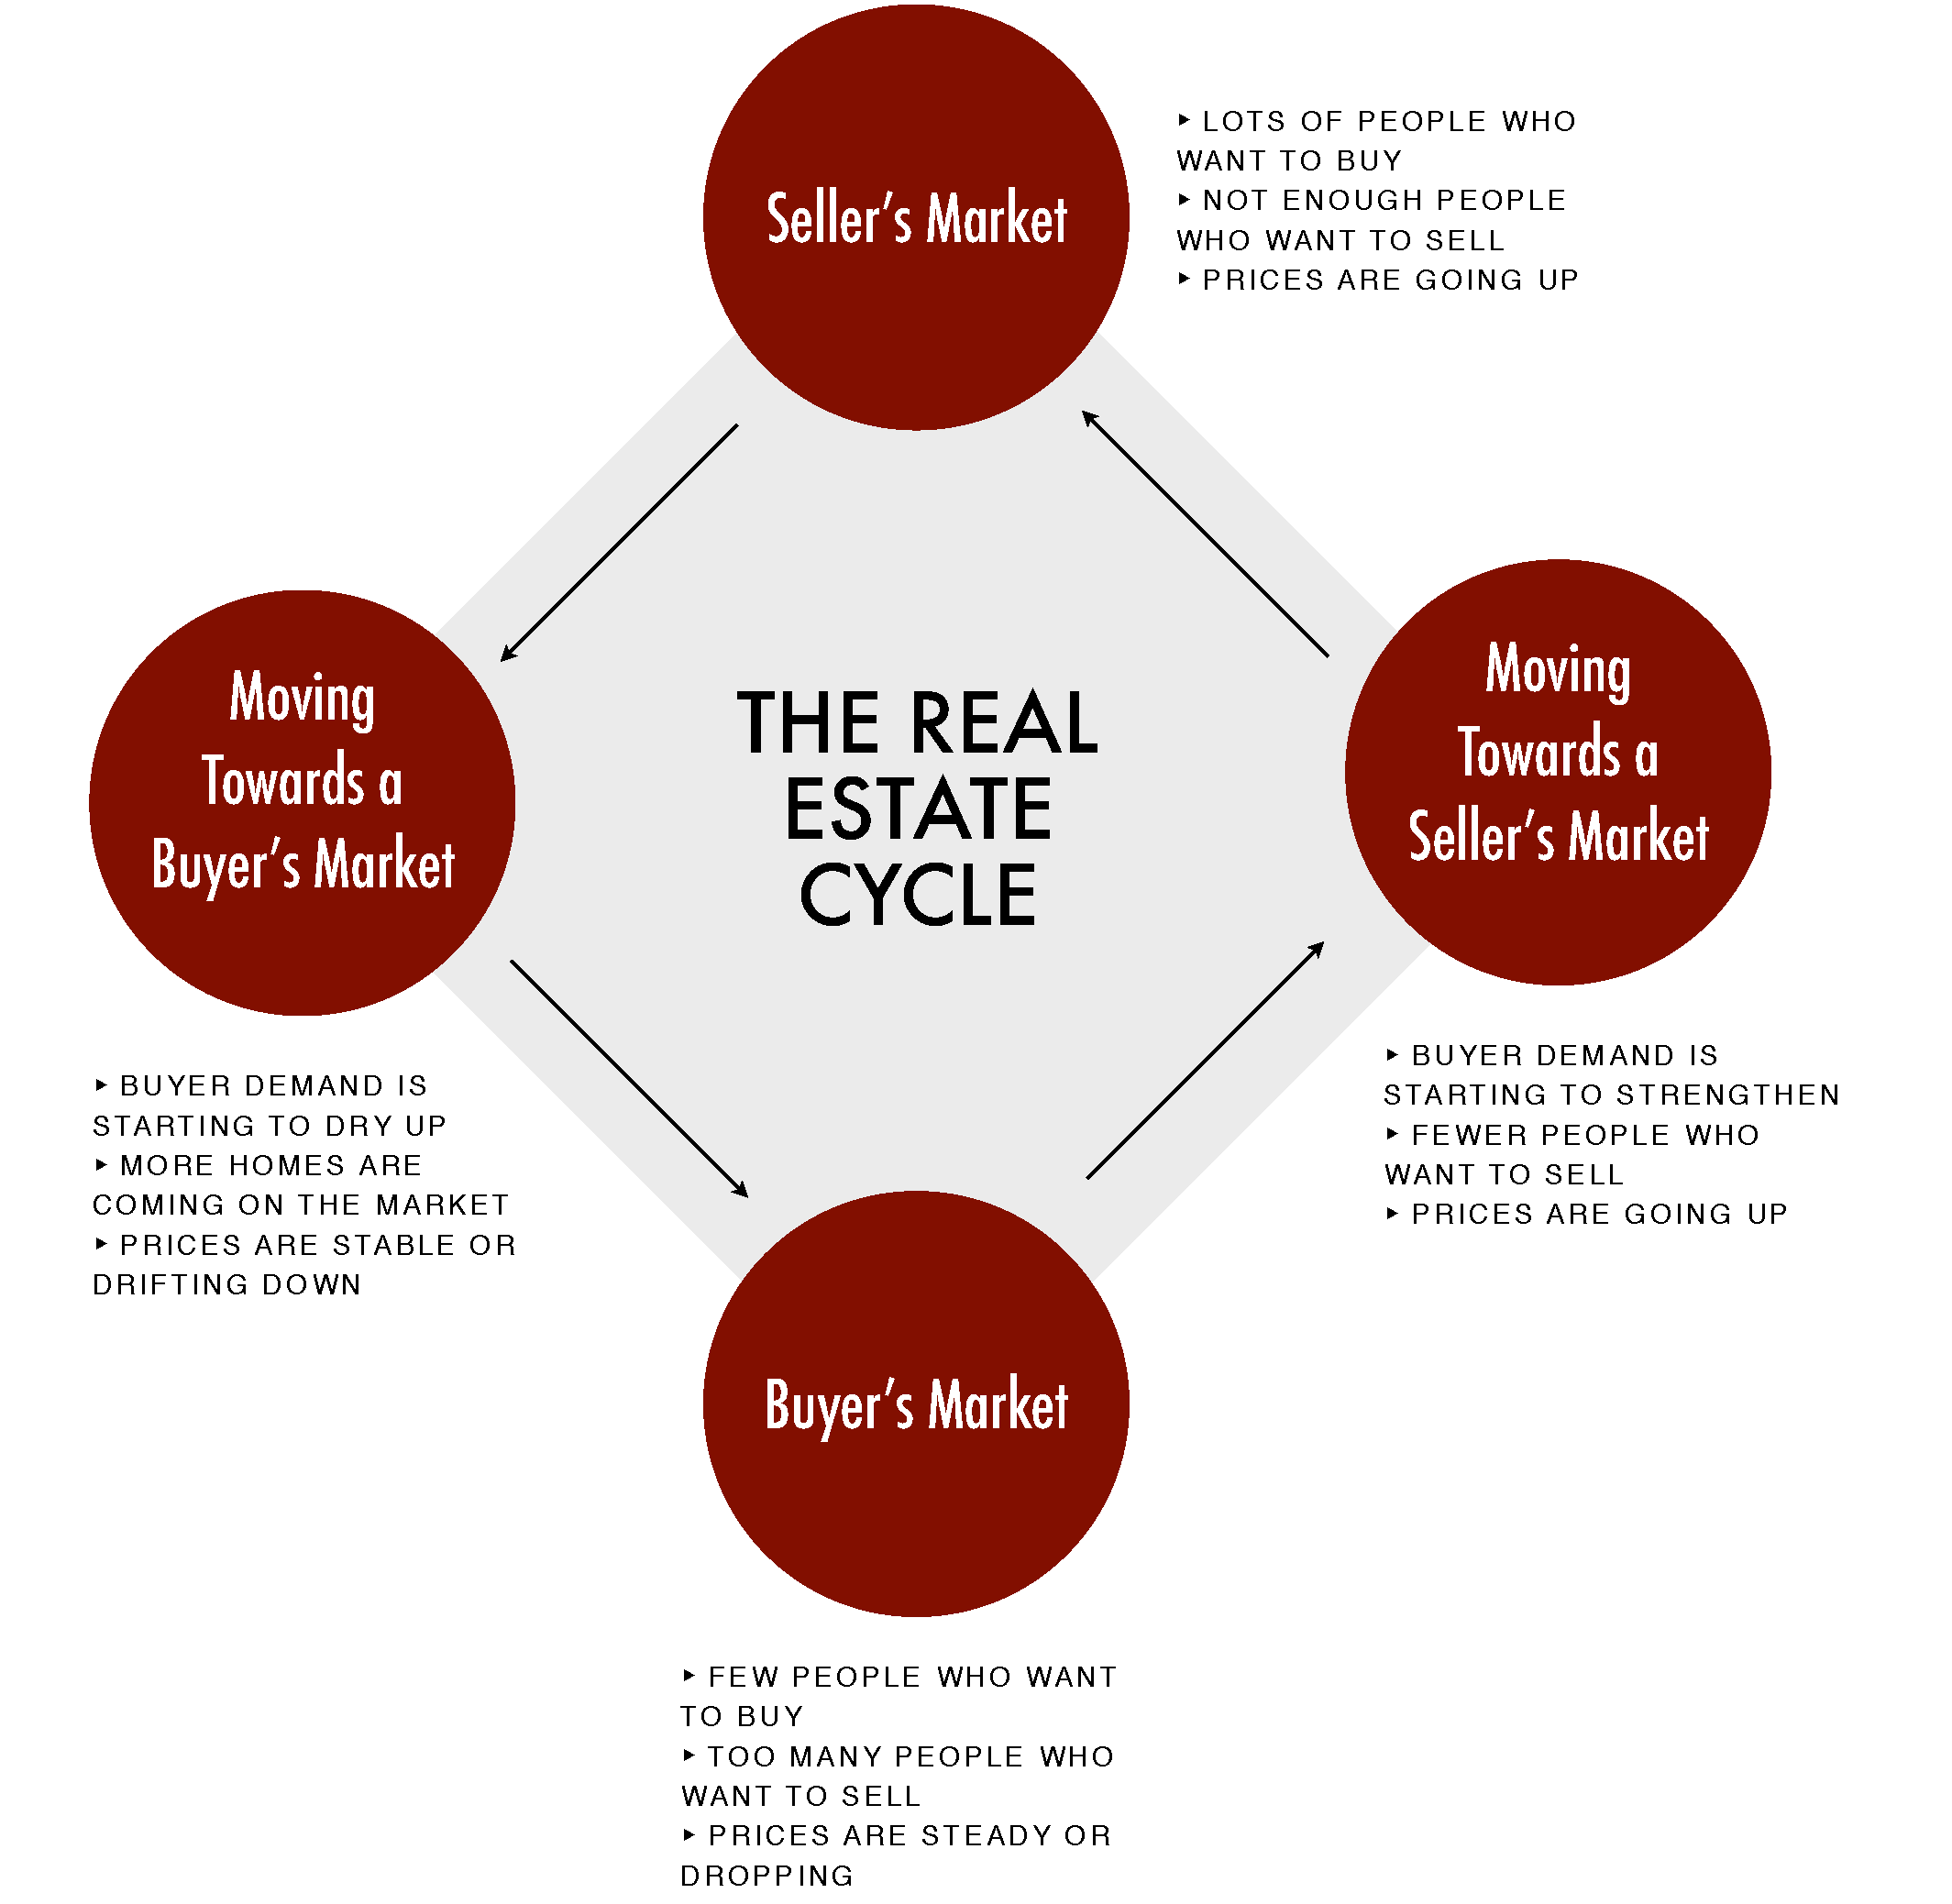 Graphic depicting the real estate market cycle, including four phases: seller's market; moving towards a buyer's market; buyer's market; and moving towards a seller's market